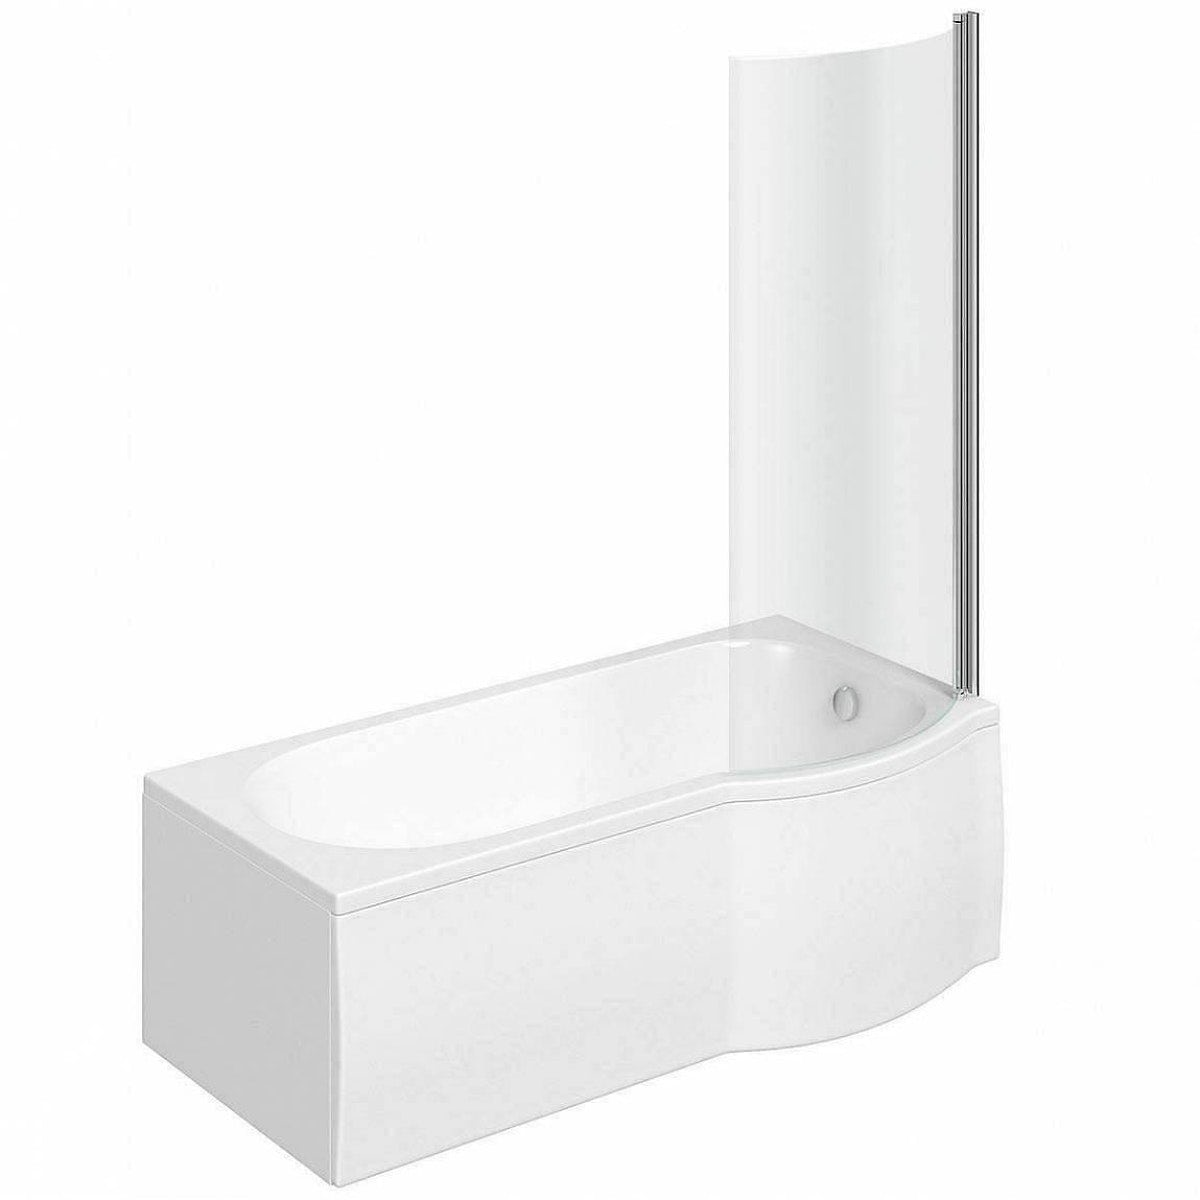 Clarity P shaped right handed shower bath with 5mm shower screen